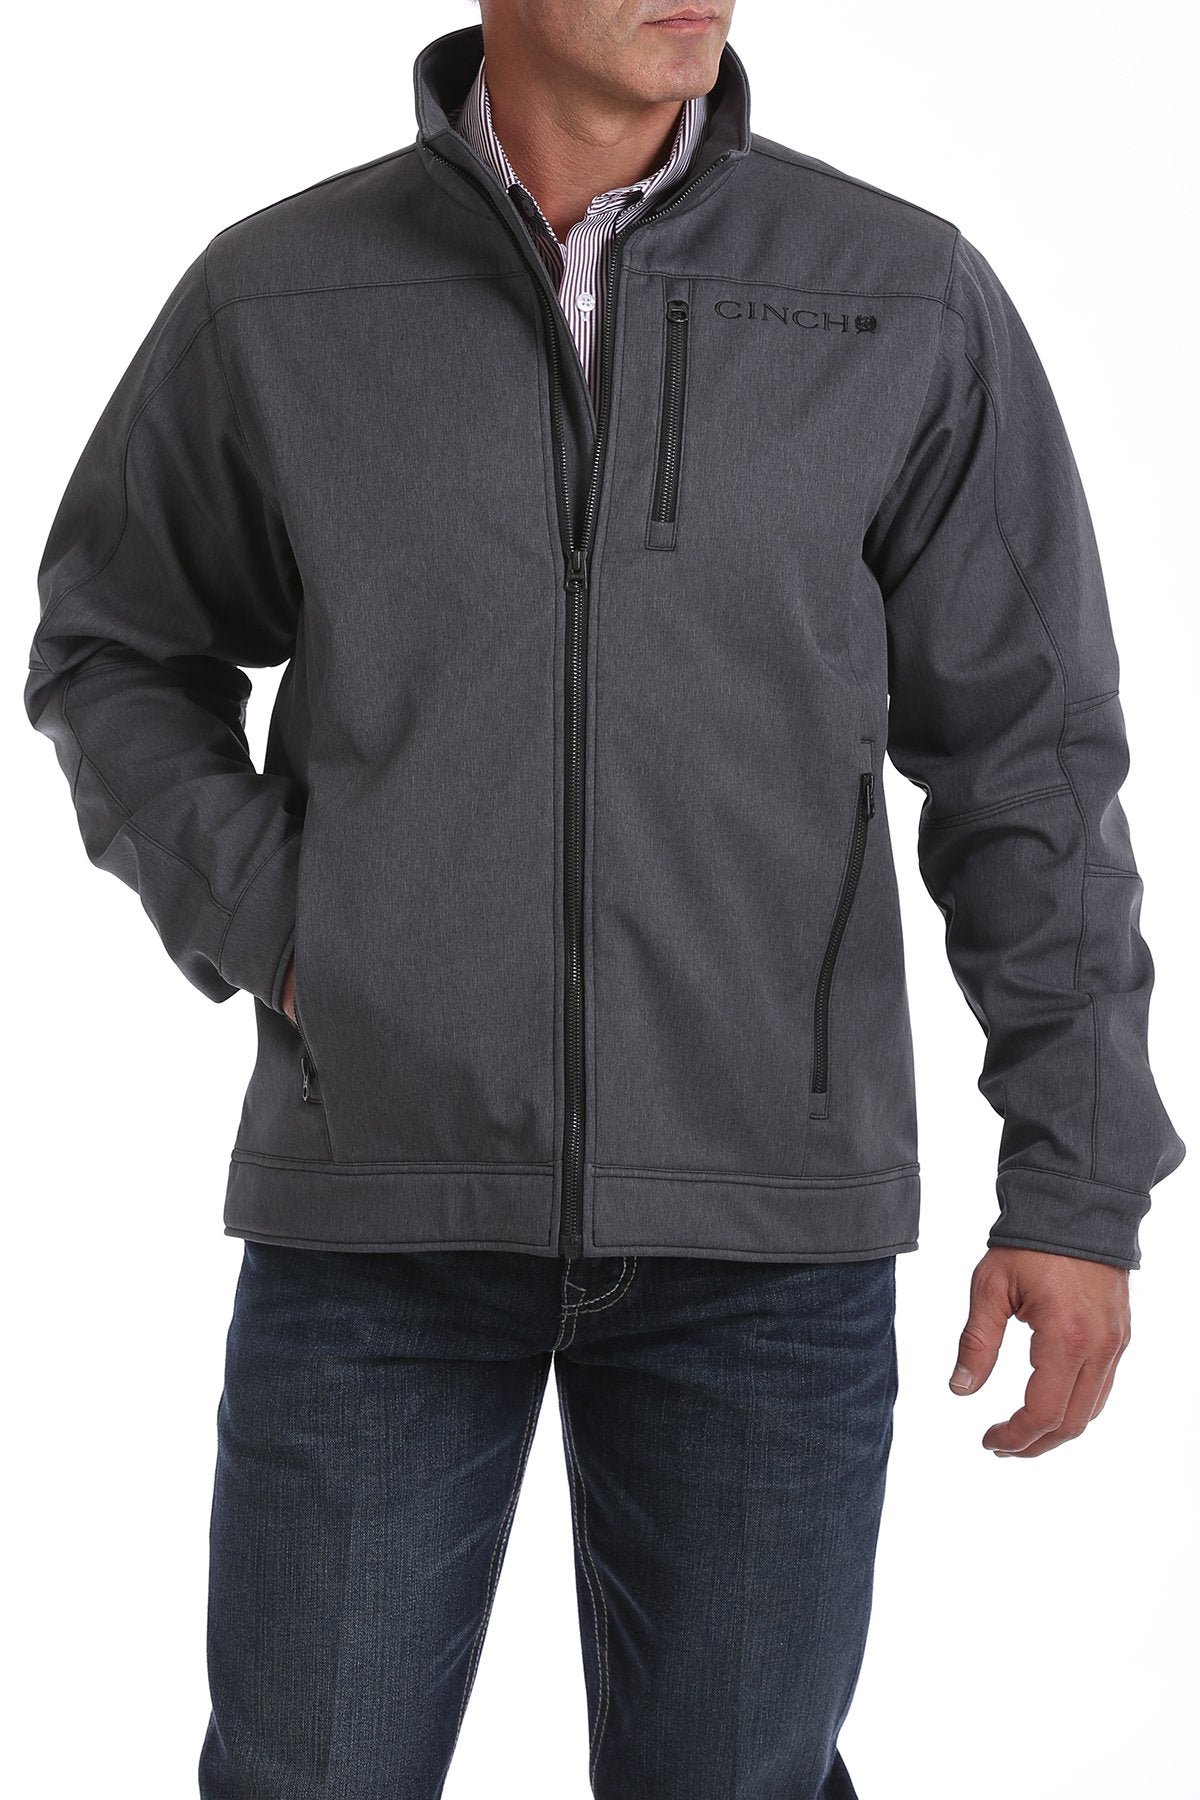 Cinch Textured Heather Gray Bonded Men's Jacket